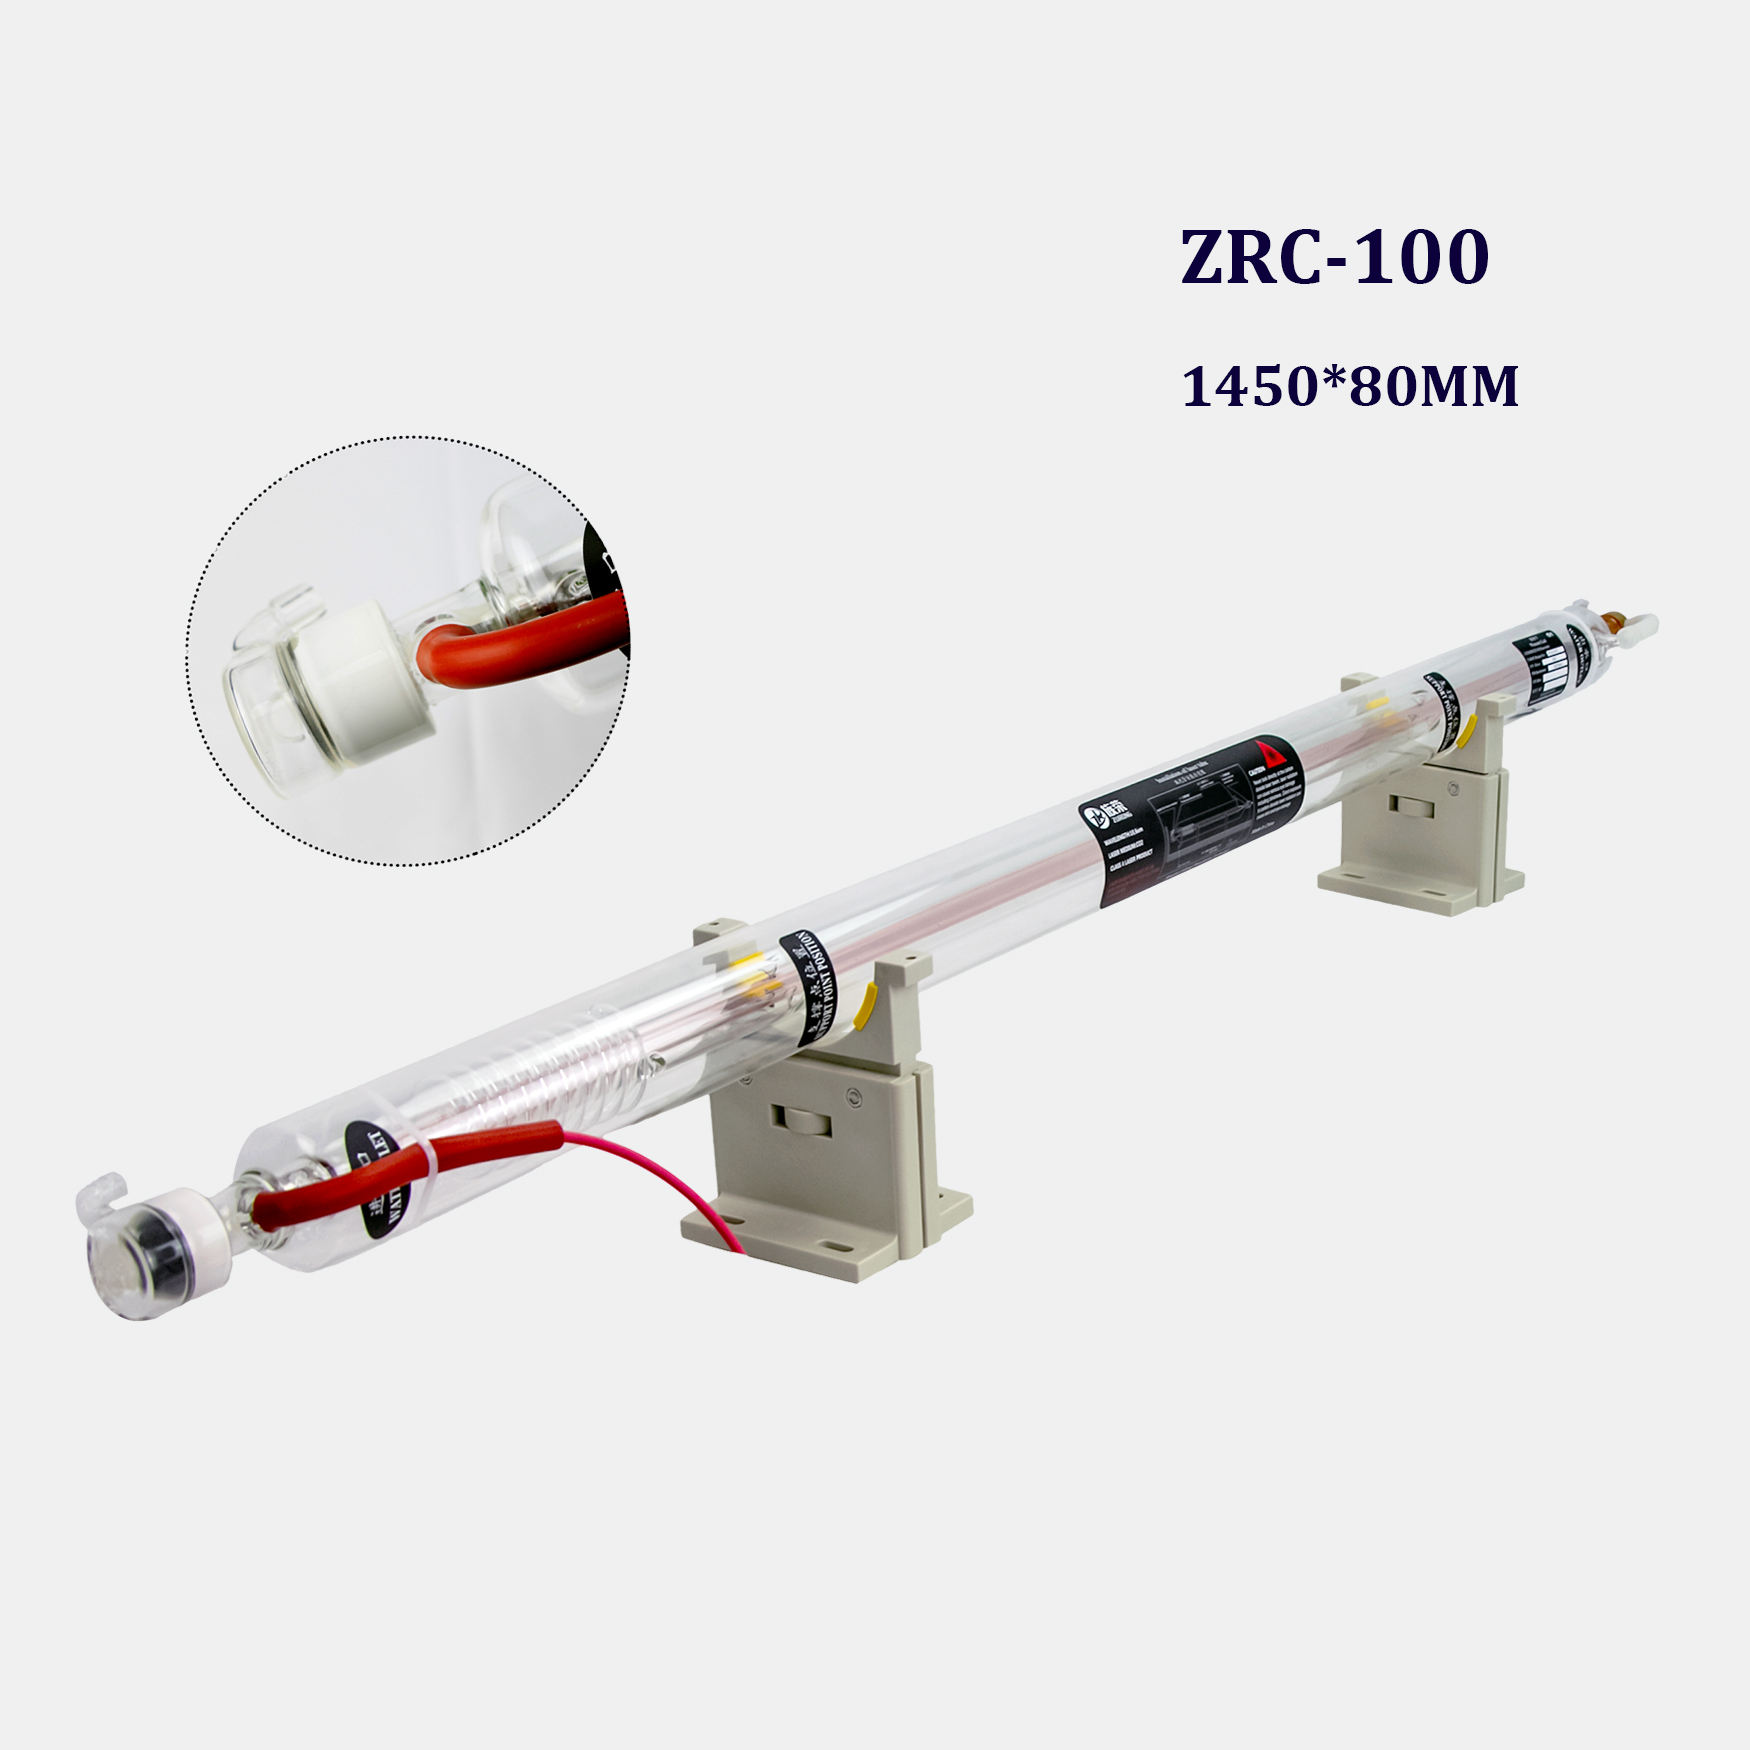 SHZR 80mm 80W 100W 130W 150W 170W CO2 laser tube 100W glass co2 laser tube With 9mouths warranty